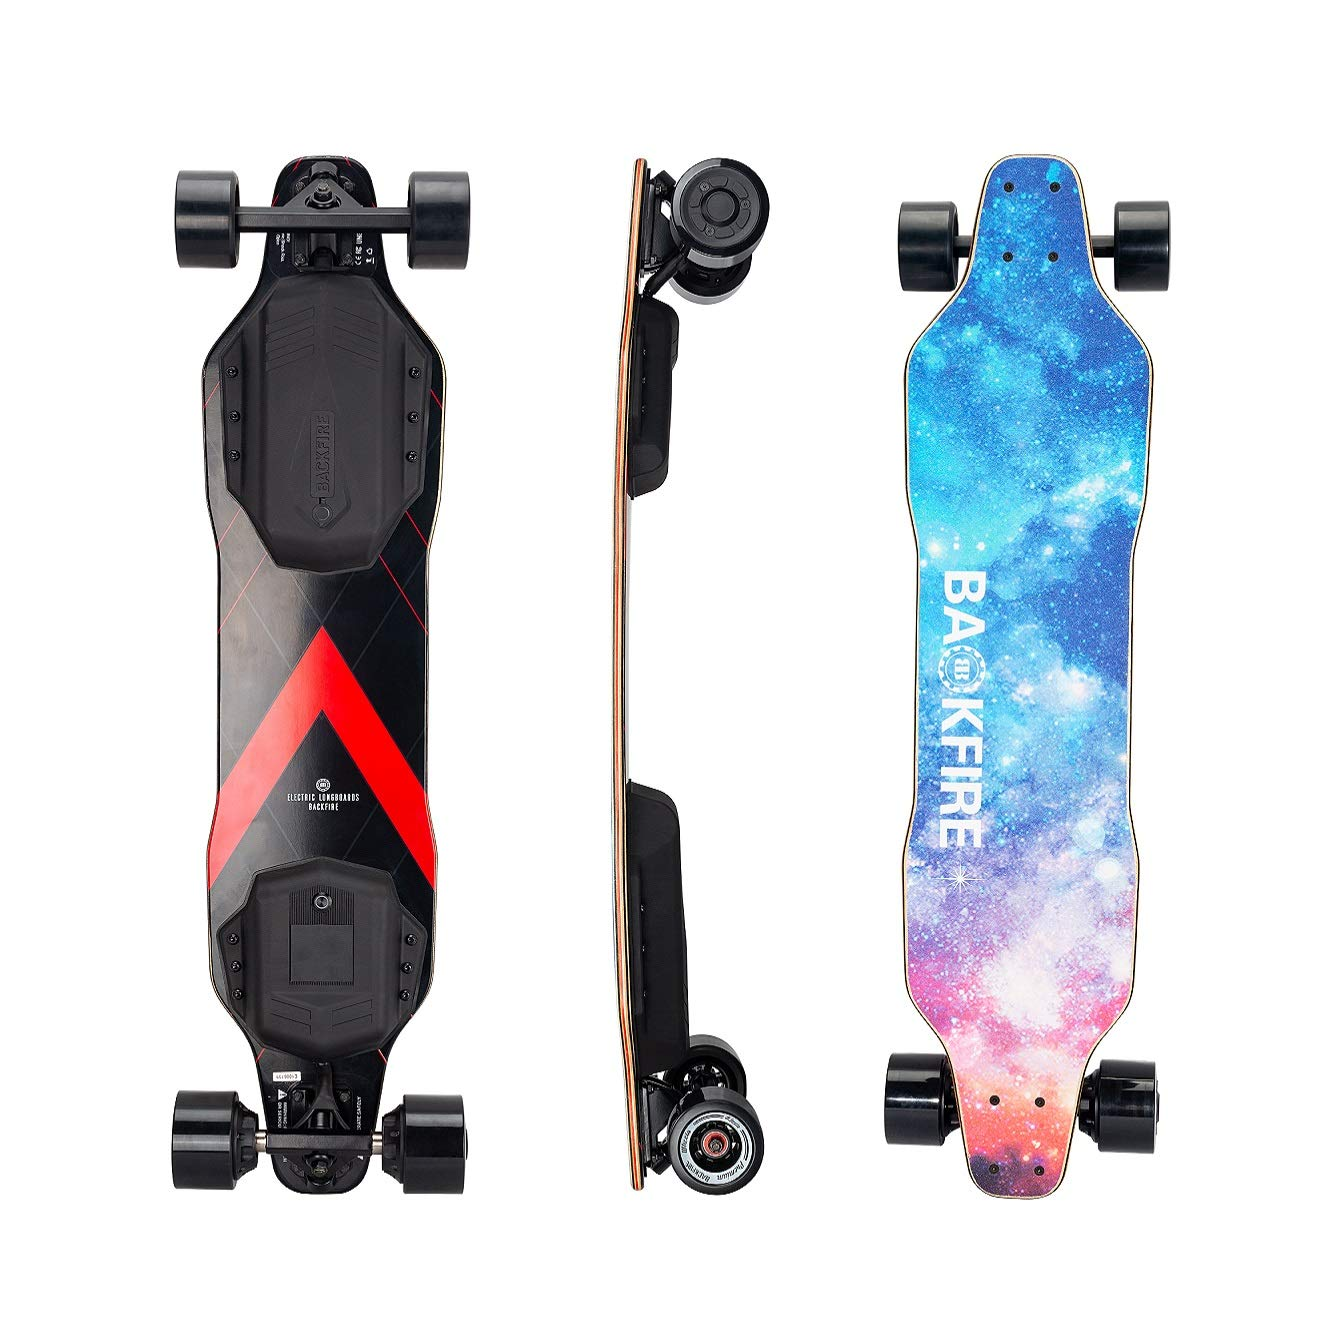 BACKFIRE New G2 2019 with G2T New Motors and ESC, 23 Mph Top Speed,10 Miles Range, 83MM Wheels (Galaxy Black Wheel)